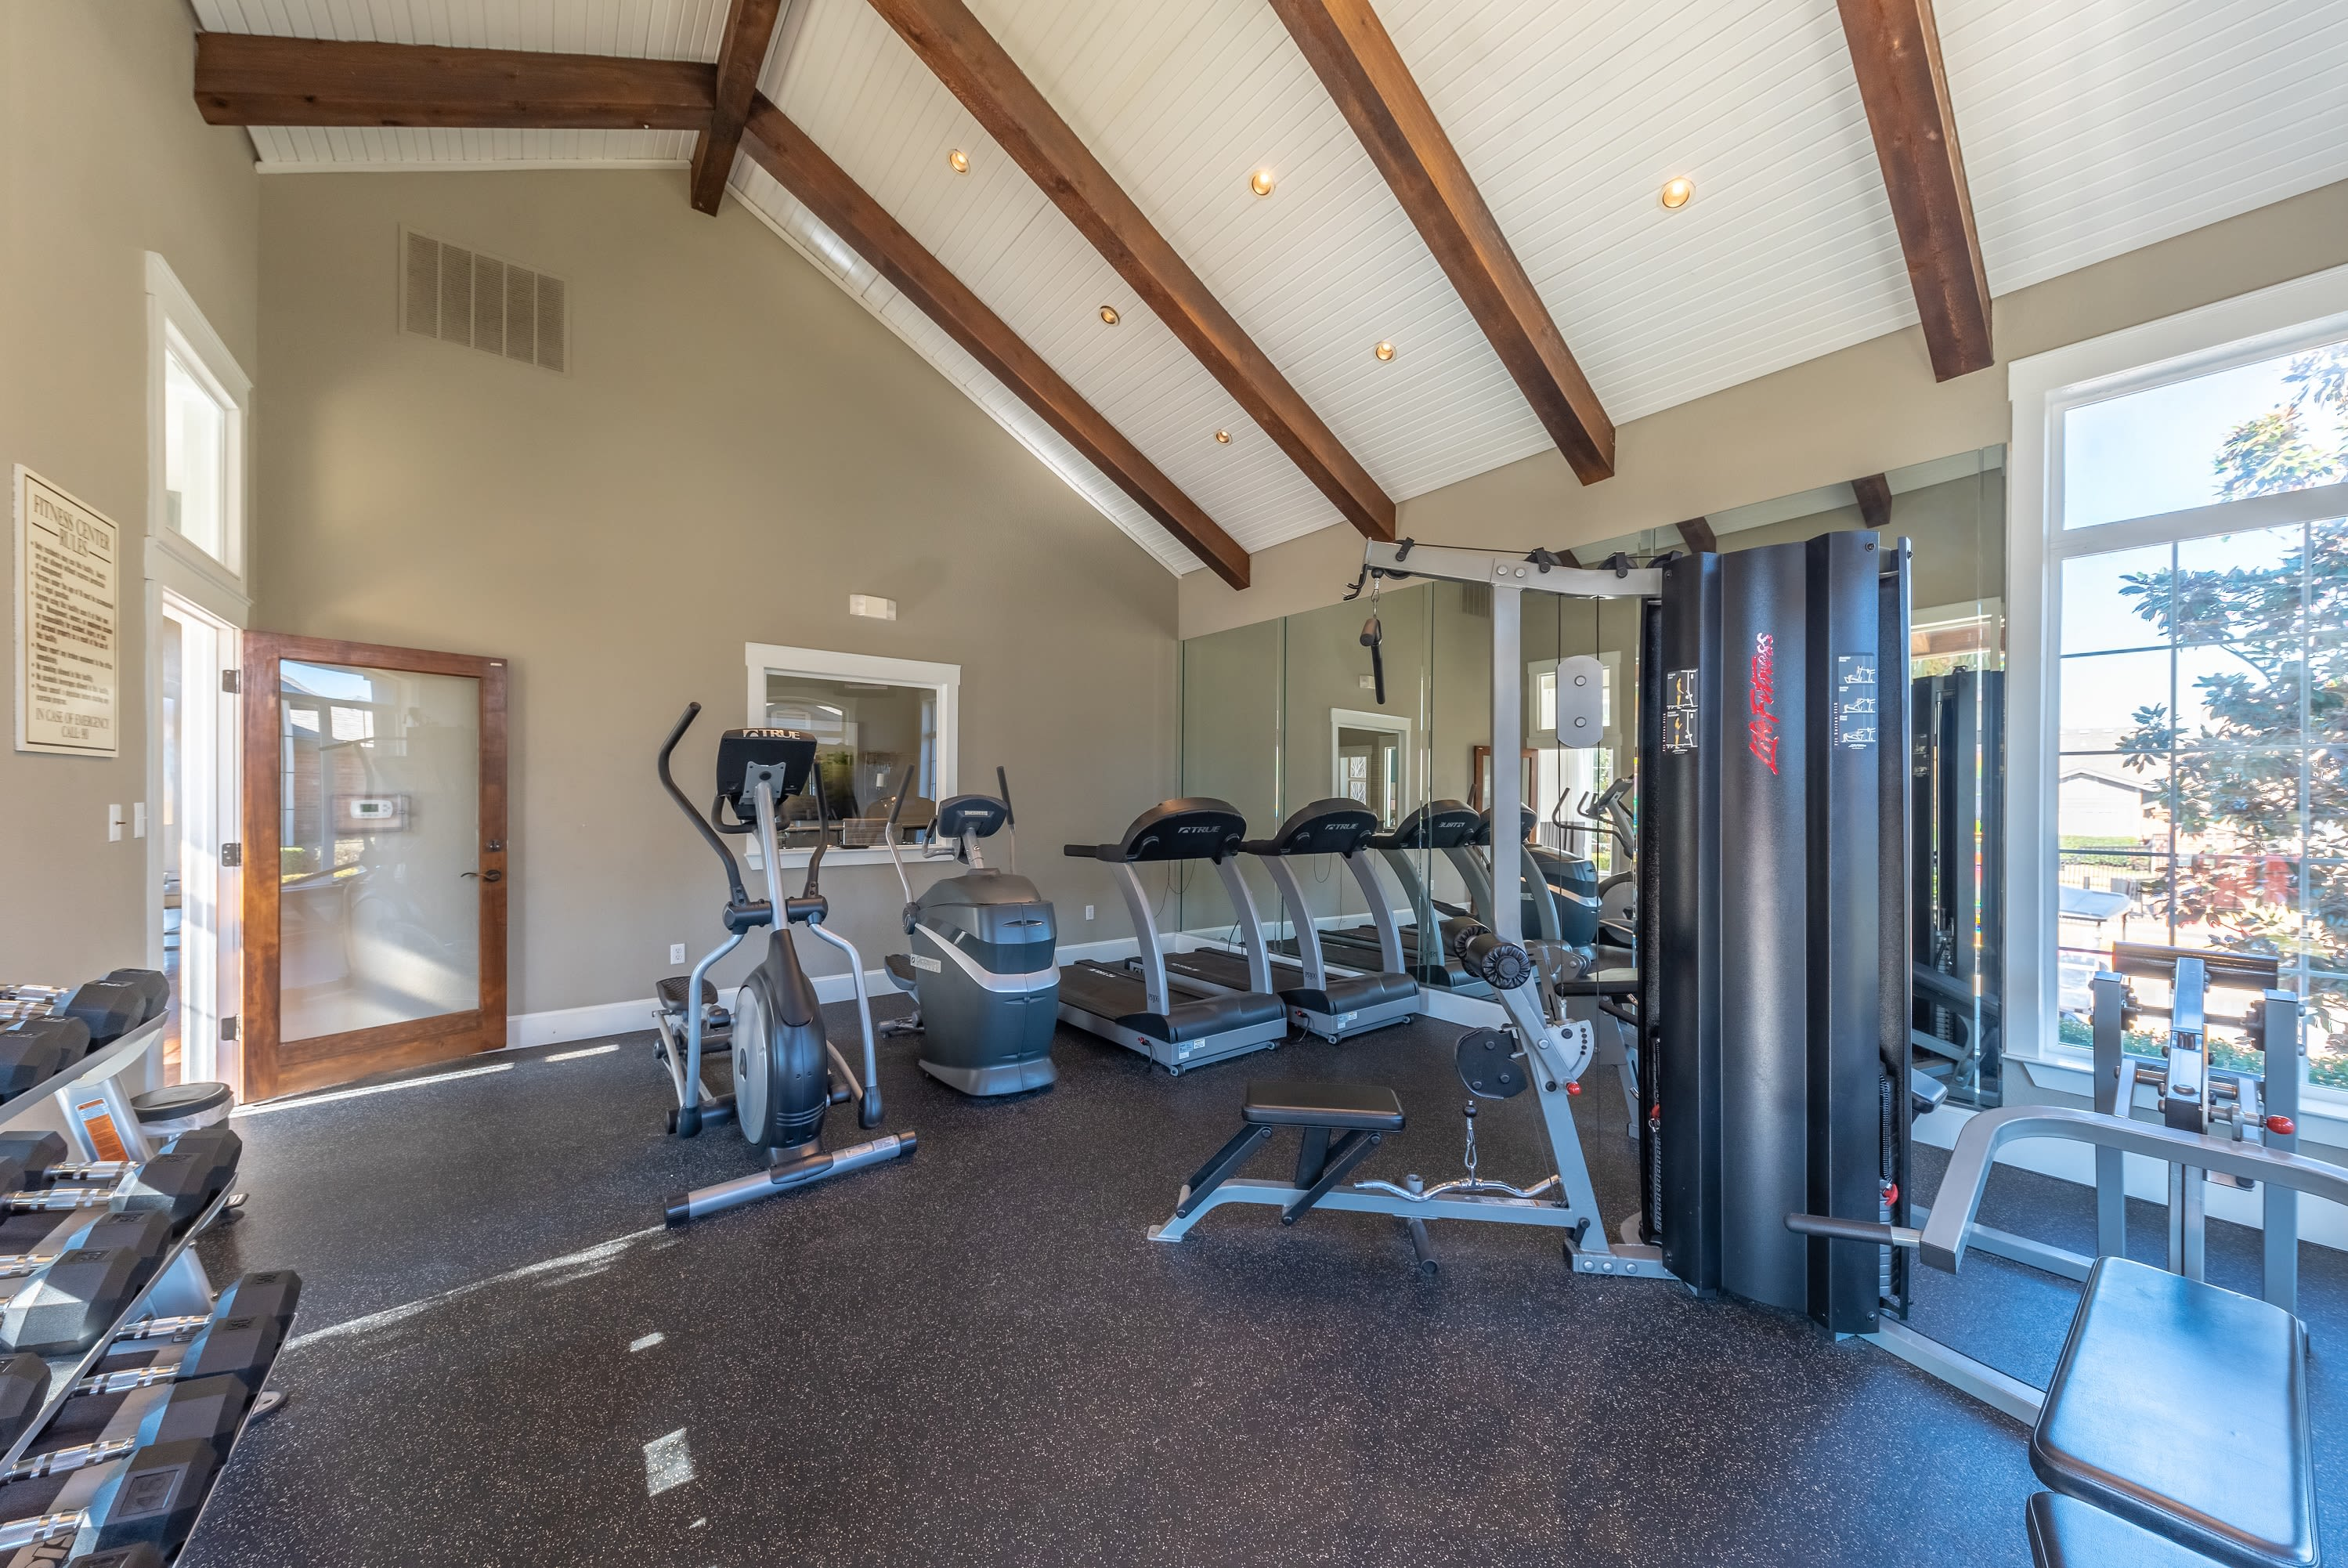 Well equipped fitness center at Village Green of Bear Creek in Euless, Texas